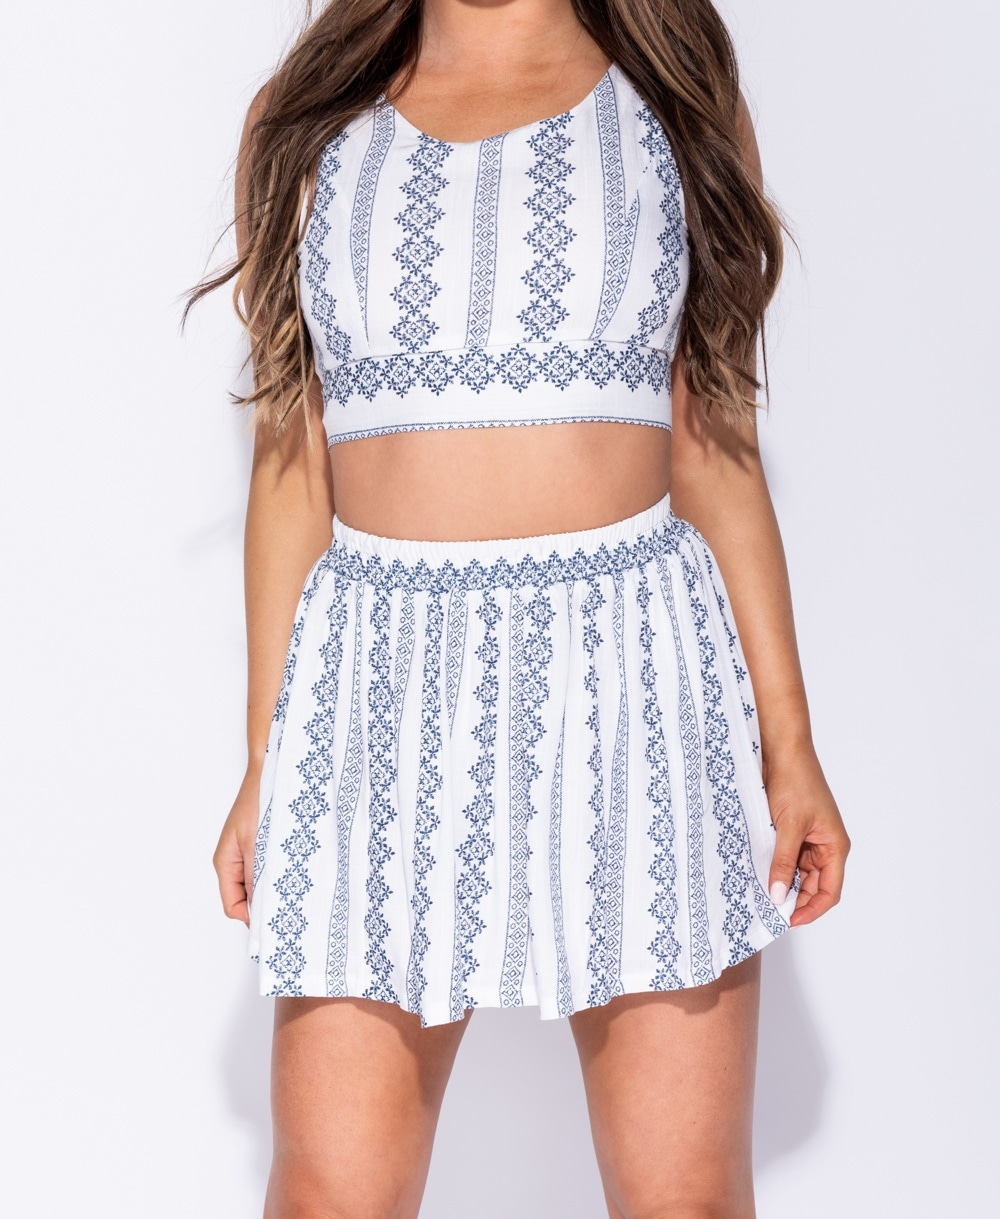 f82991dfb6 Wholesale Embroidery Detail Crop Top & Skater Skirt | Parisian